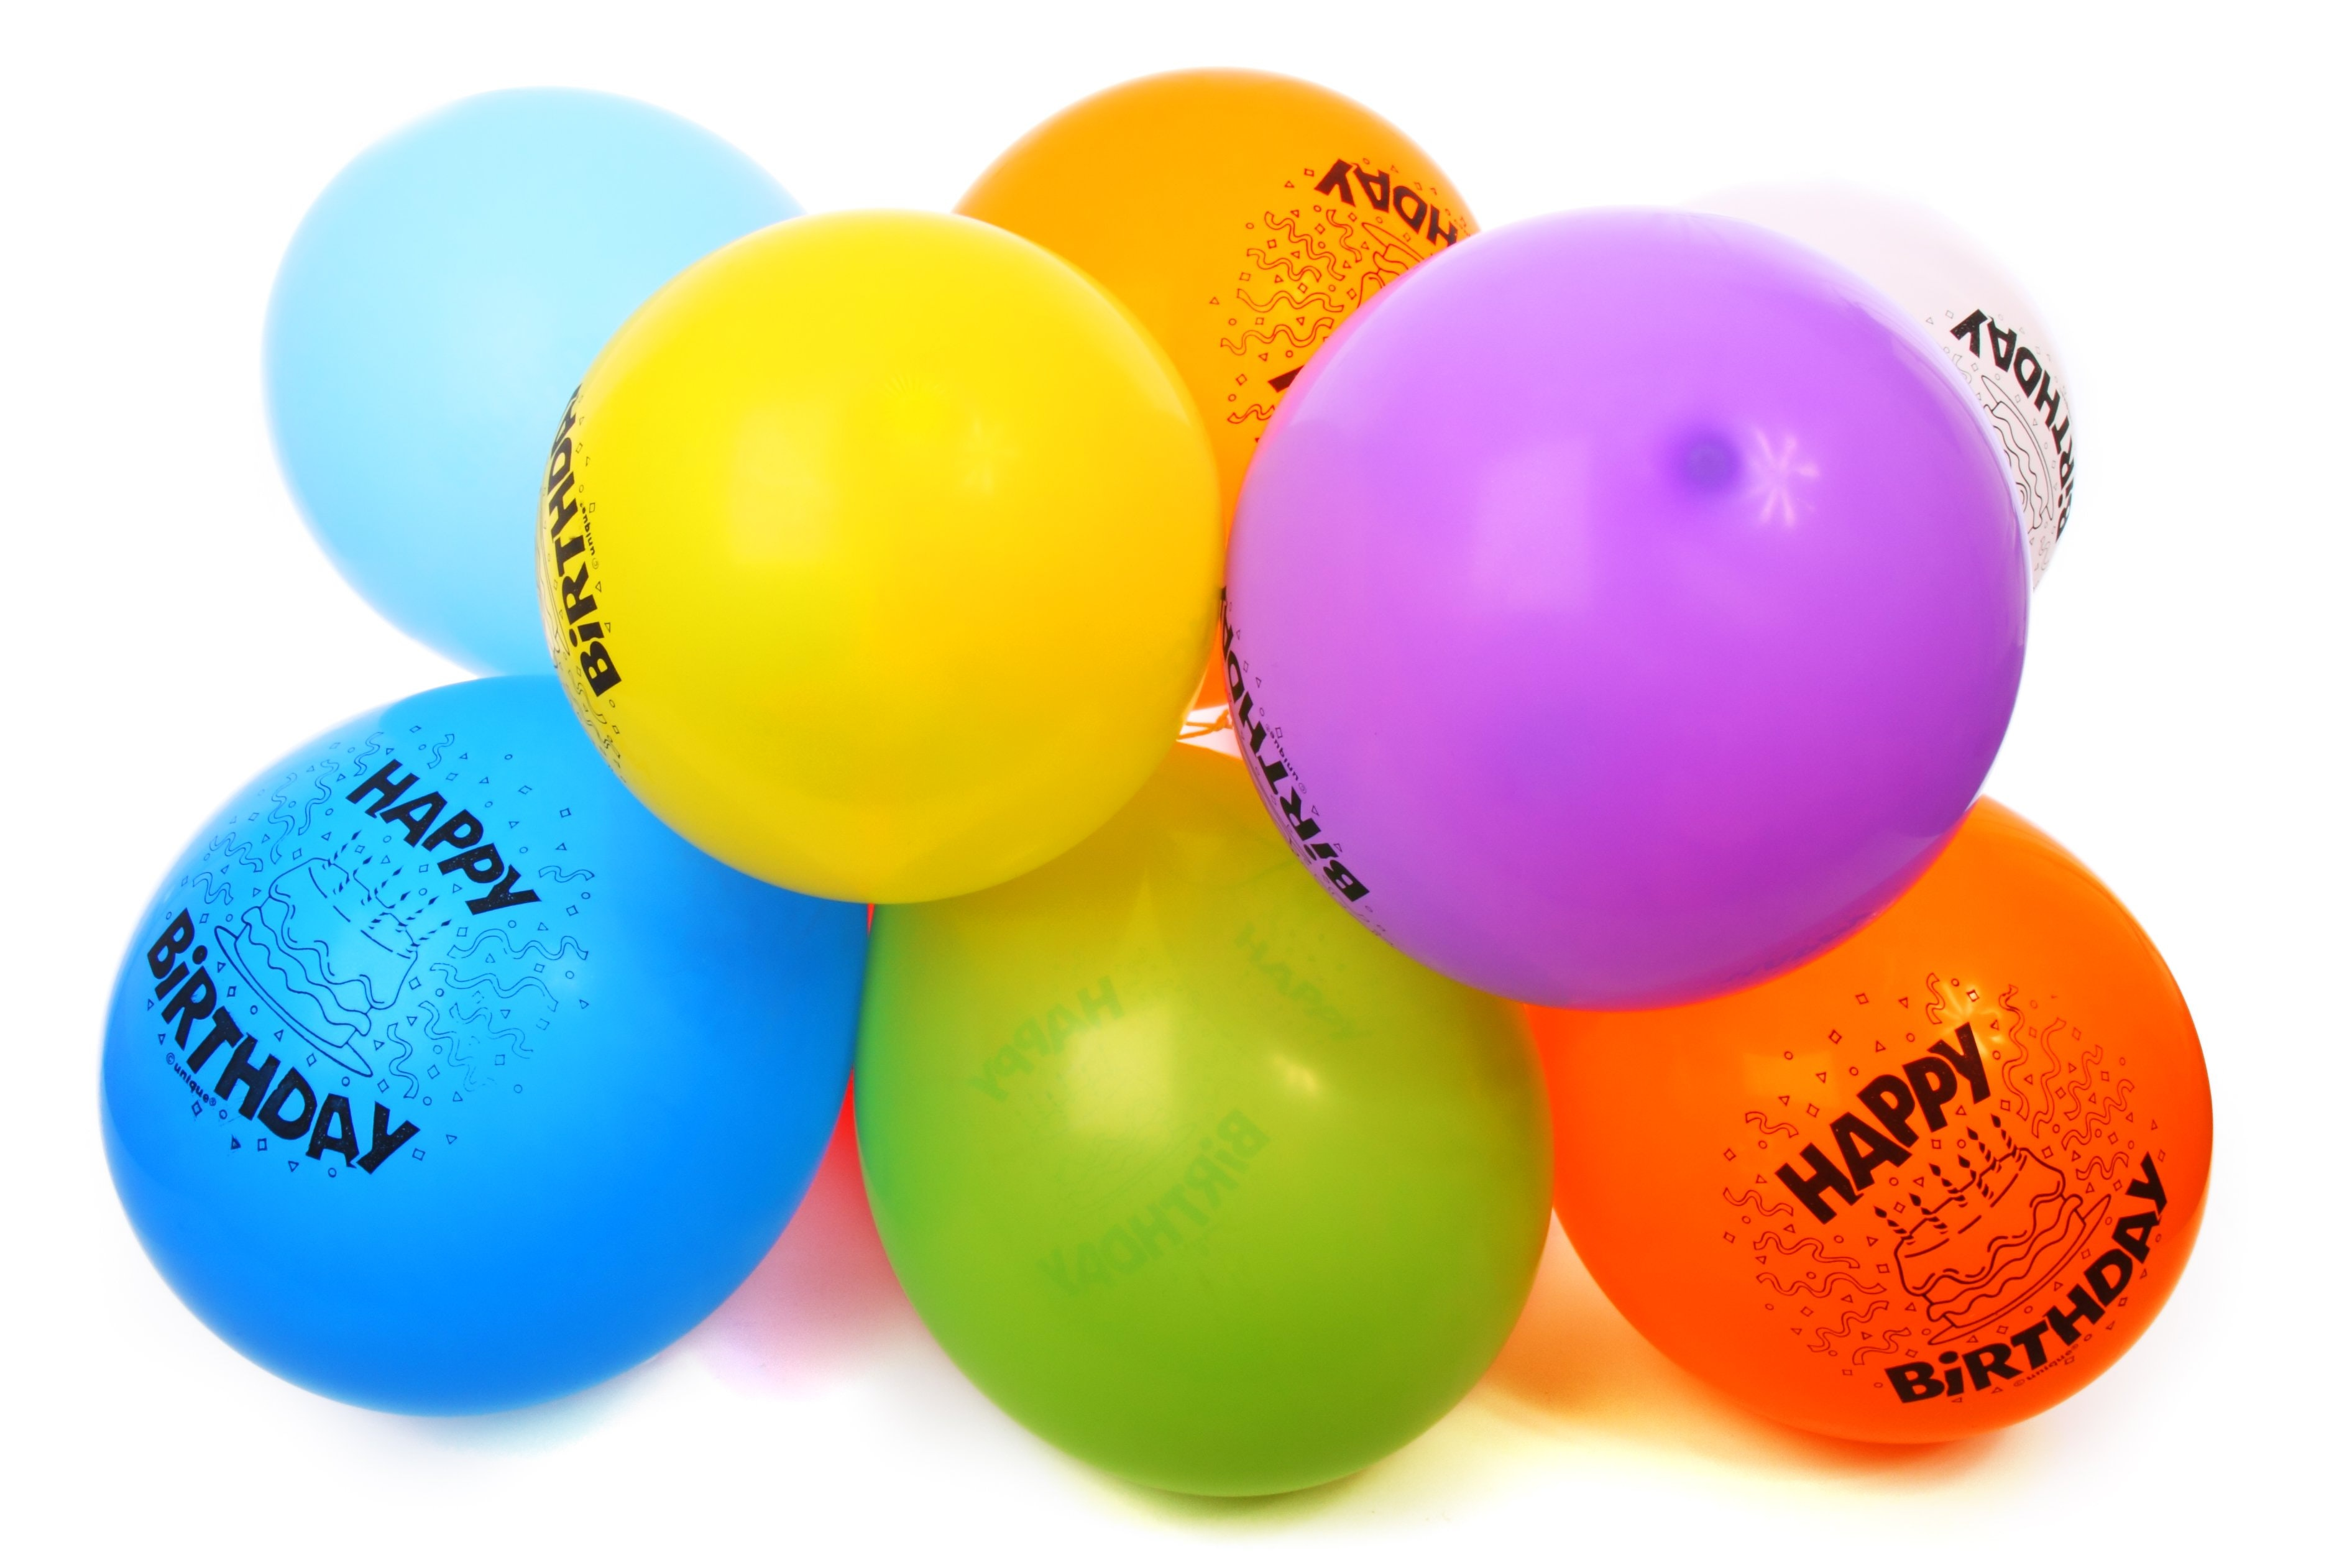 Assorted Color Birthday Balloons Free Stock Photo